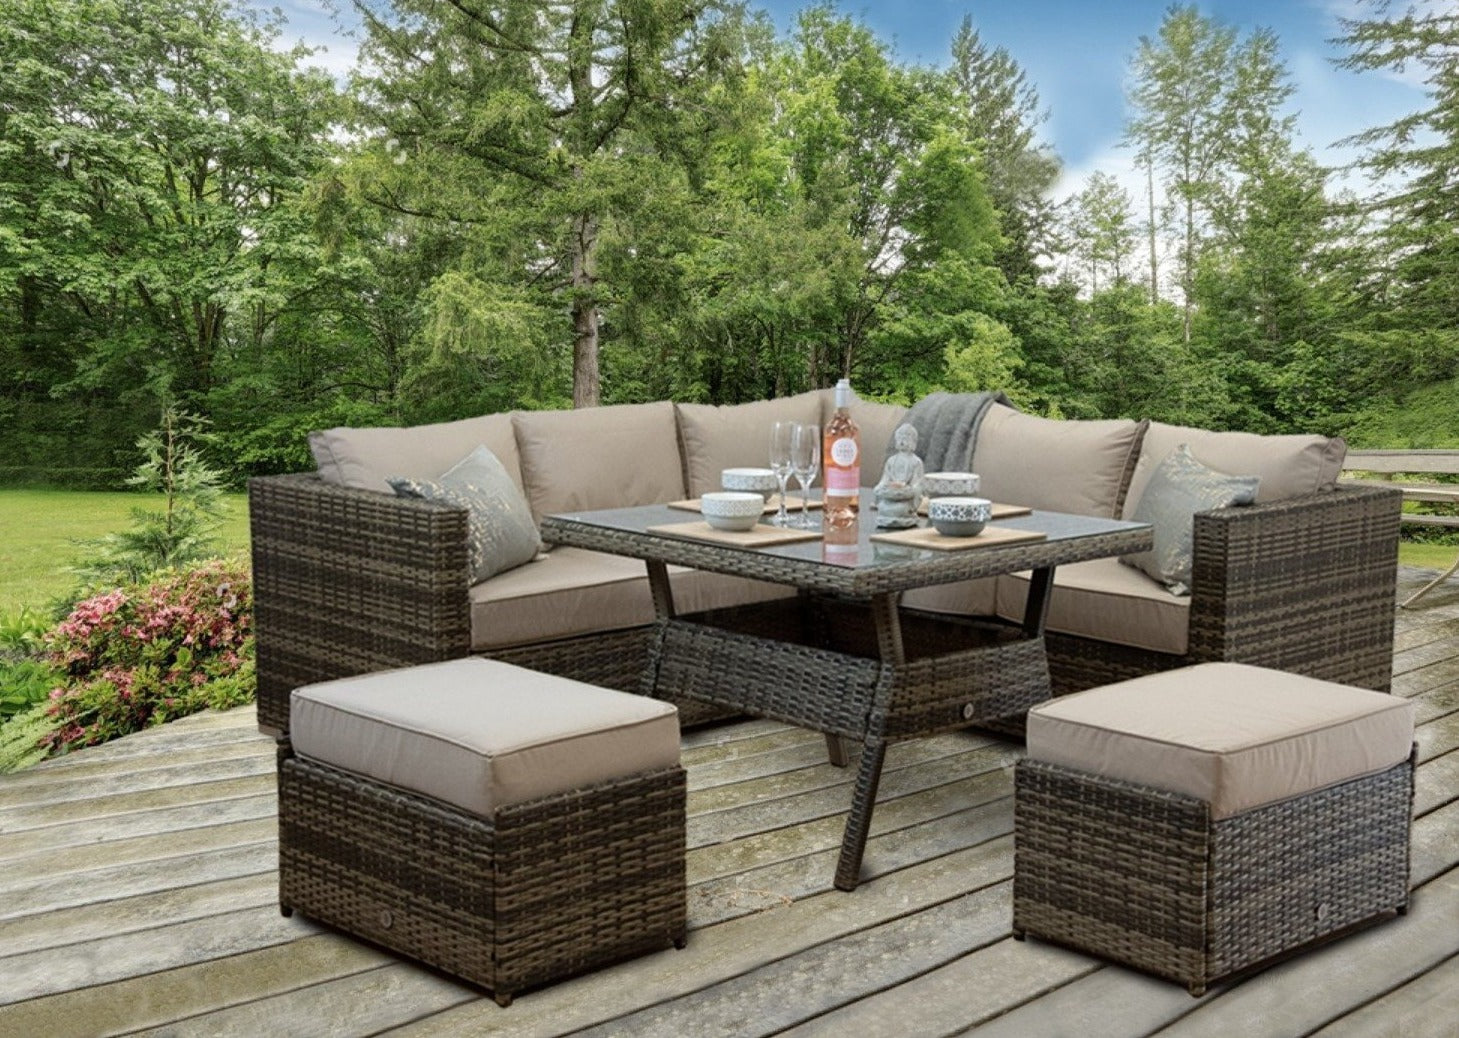 Better Homes And Gardens Replacement Cushions Azalea Ridge, Gozo Brown Natural Rattan Corner Sofa Dining Table Set Garden Furnit Furniture For The Home